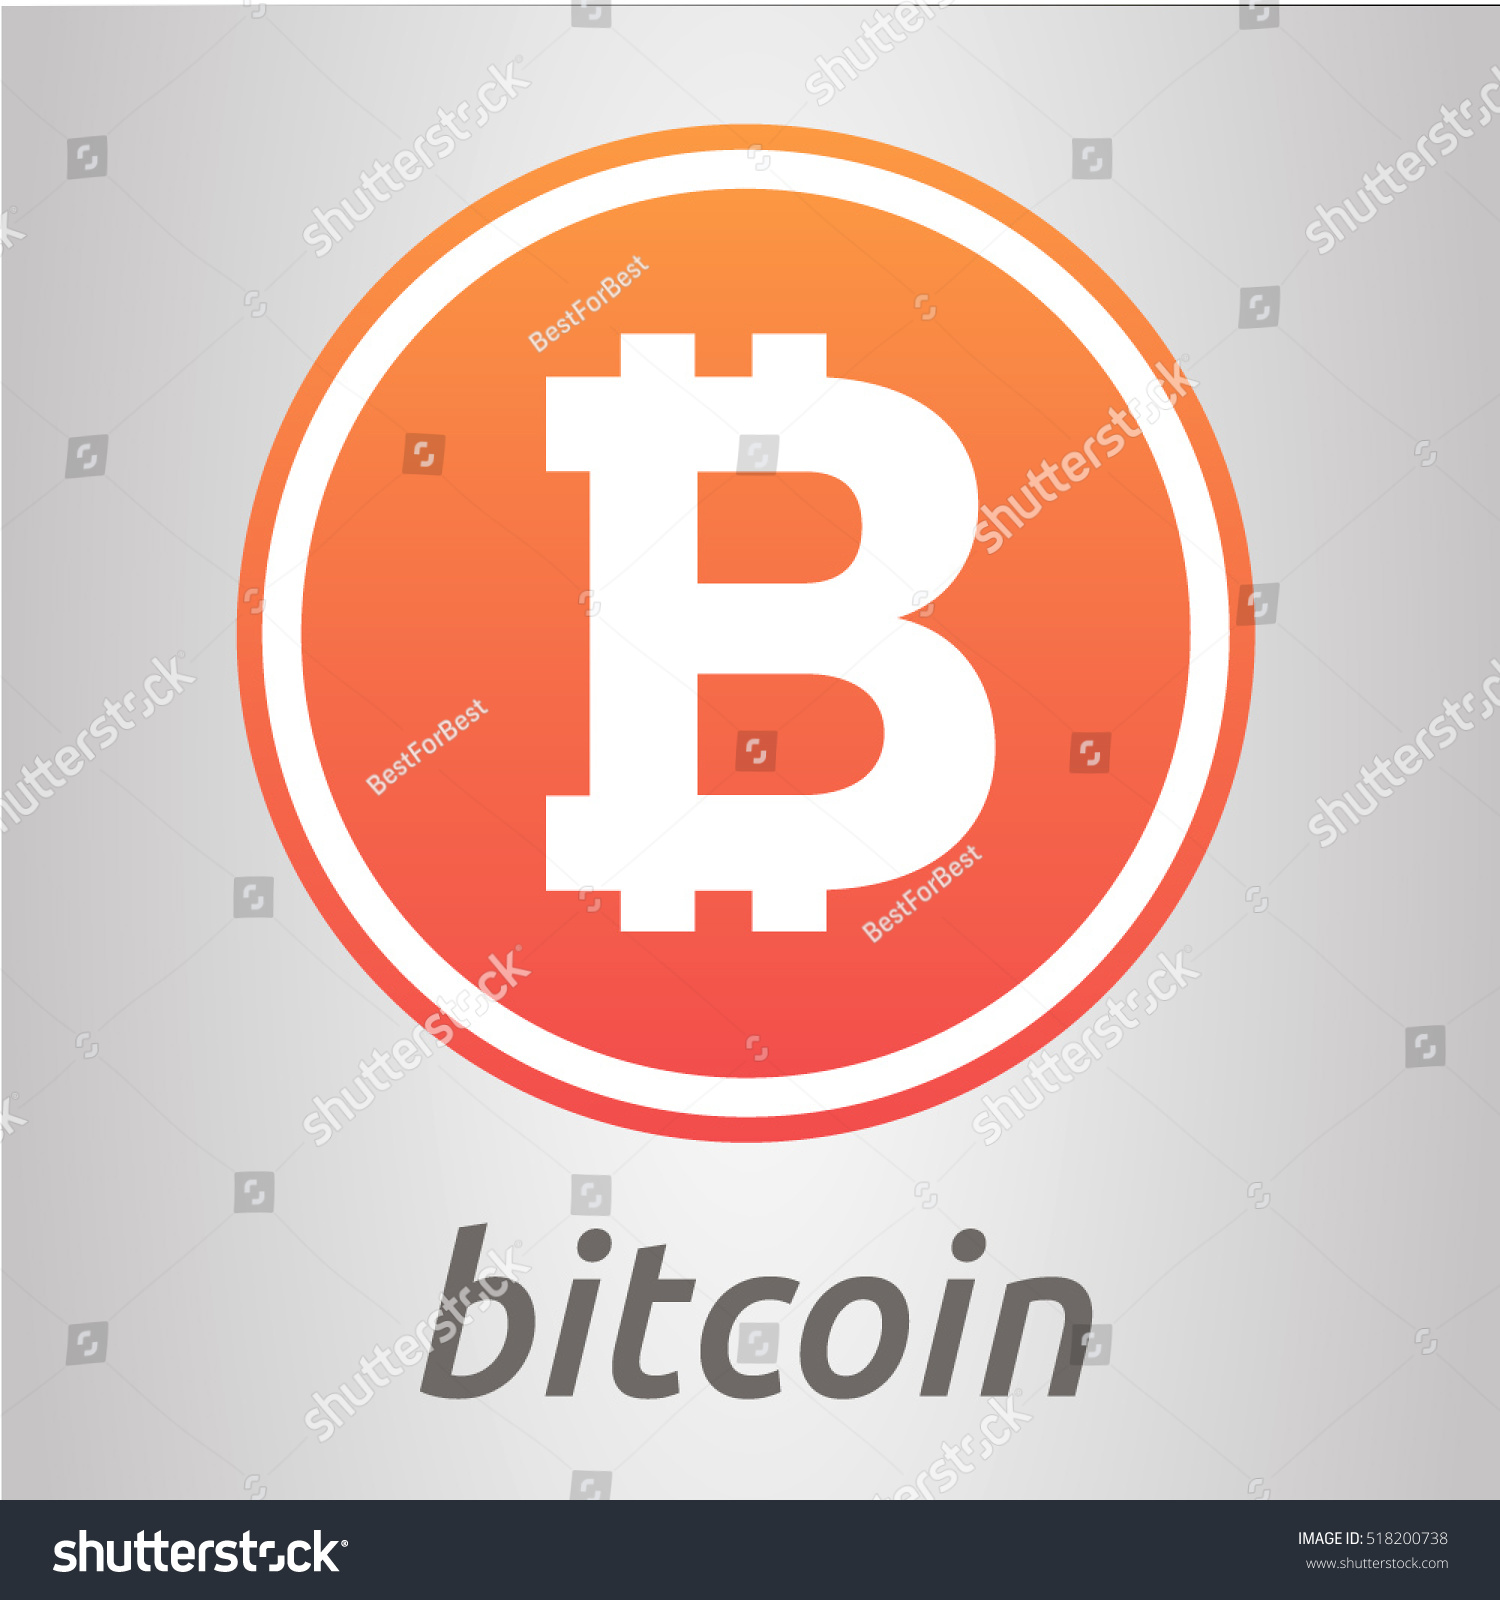 Cripto currency bitcoin flat vector logo bitcoin icon for web bitcoin logo sticker for print